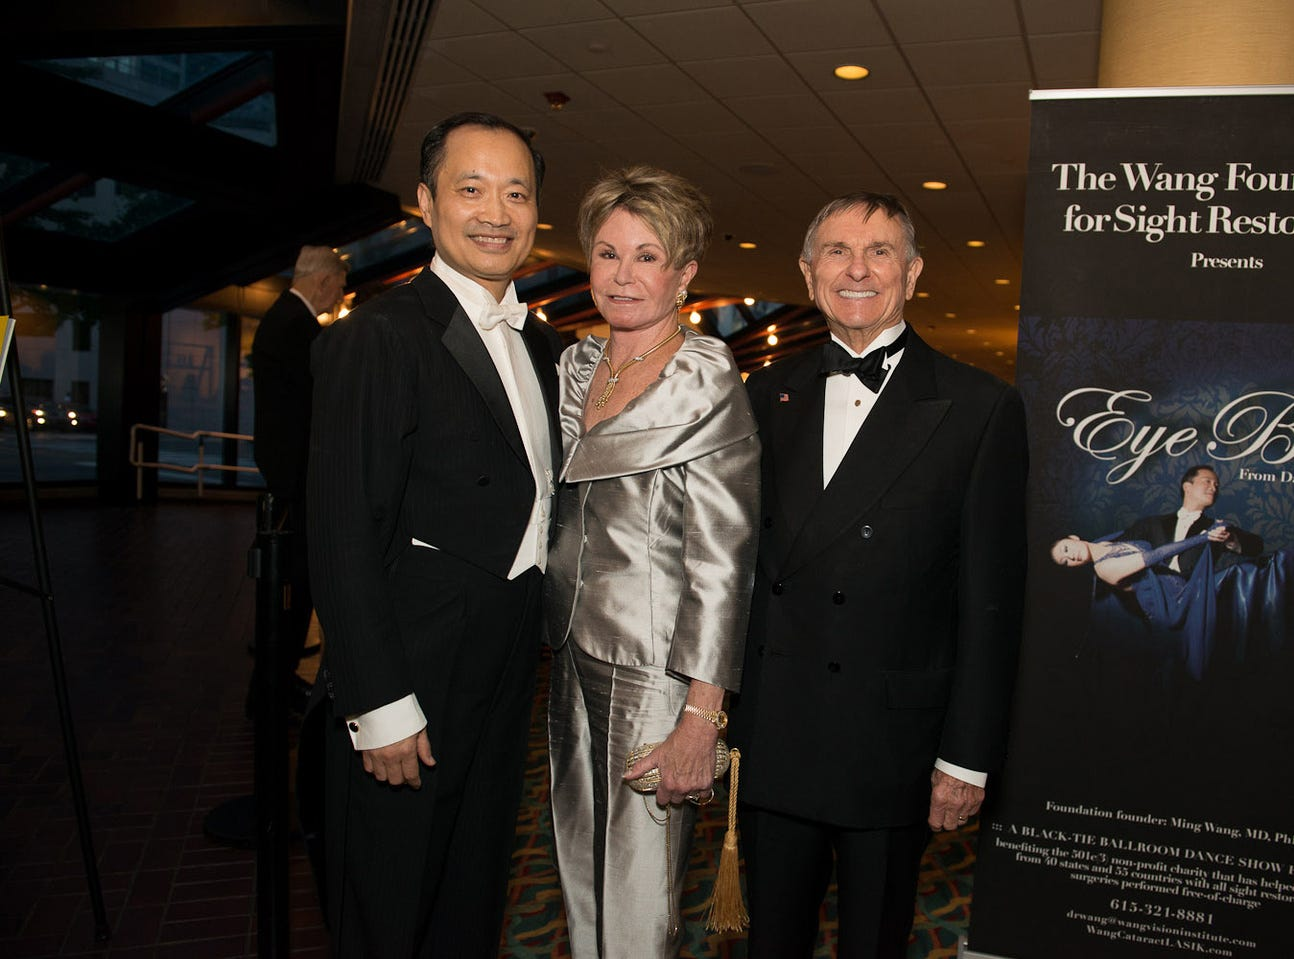 Dr. Wang, left, Colleen Conway-Welch and Ted Welch at the EyeBall, a benefit for The Wang Foundation, held at the Renaissance Hotel.